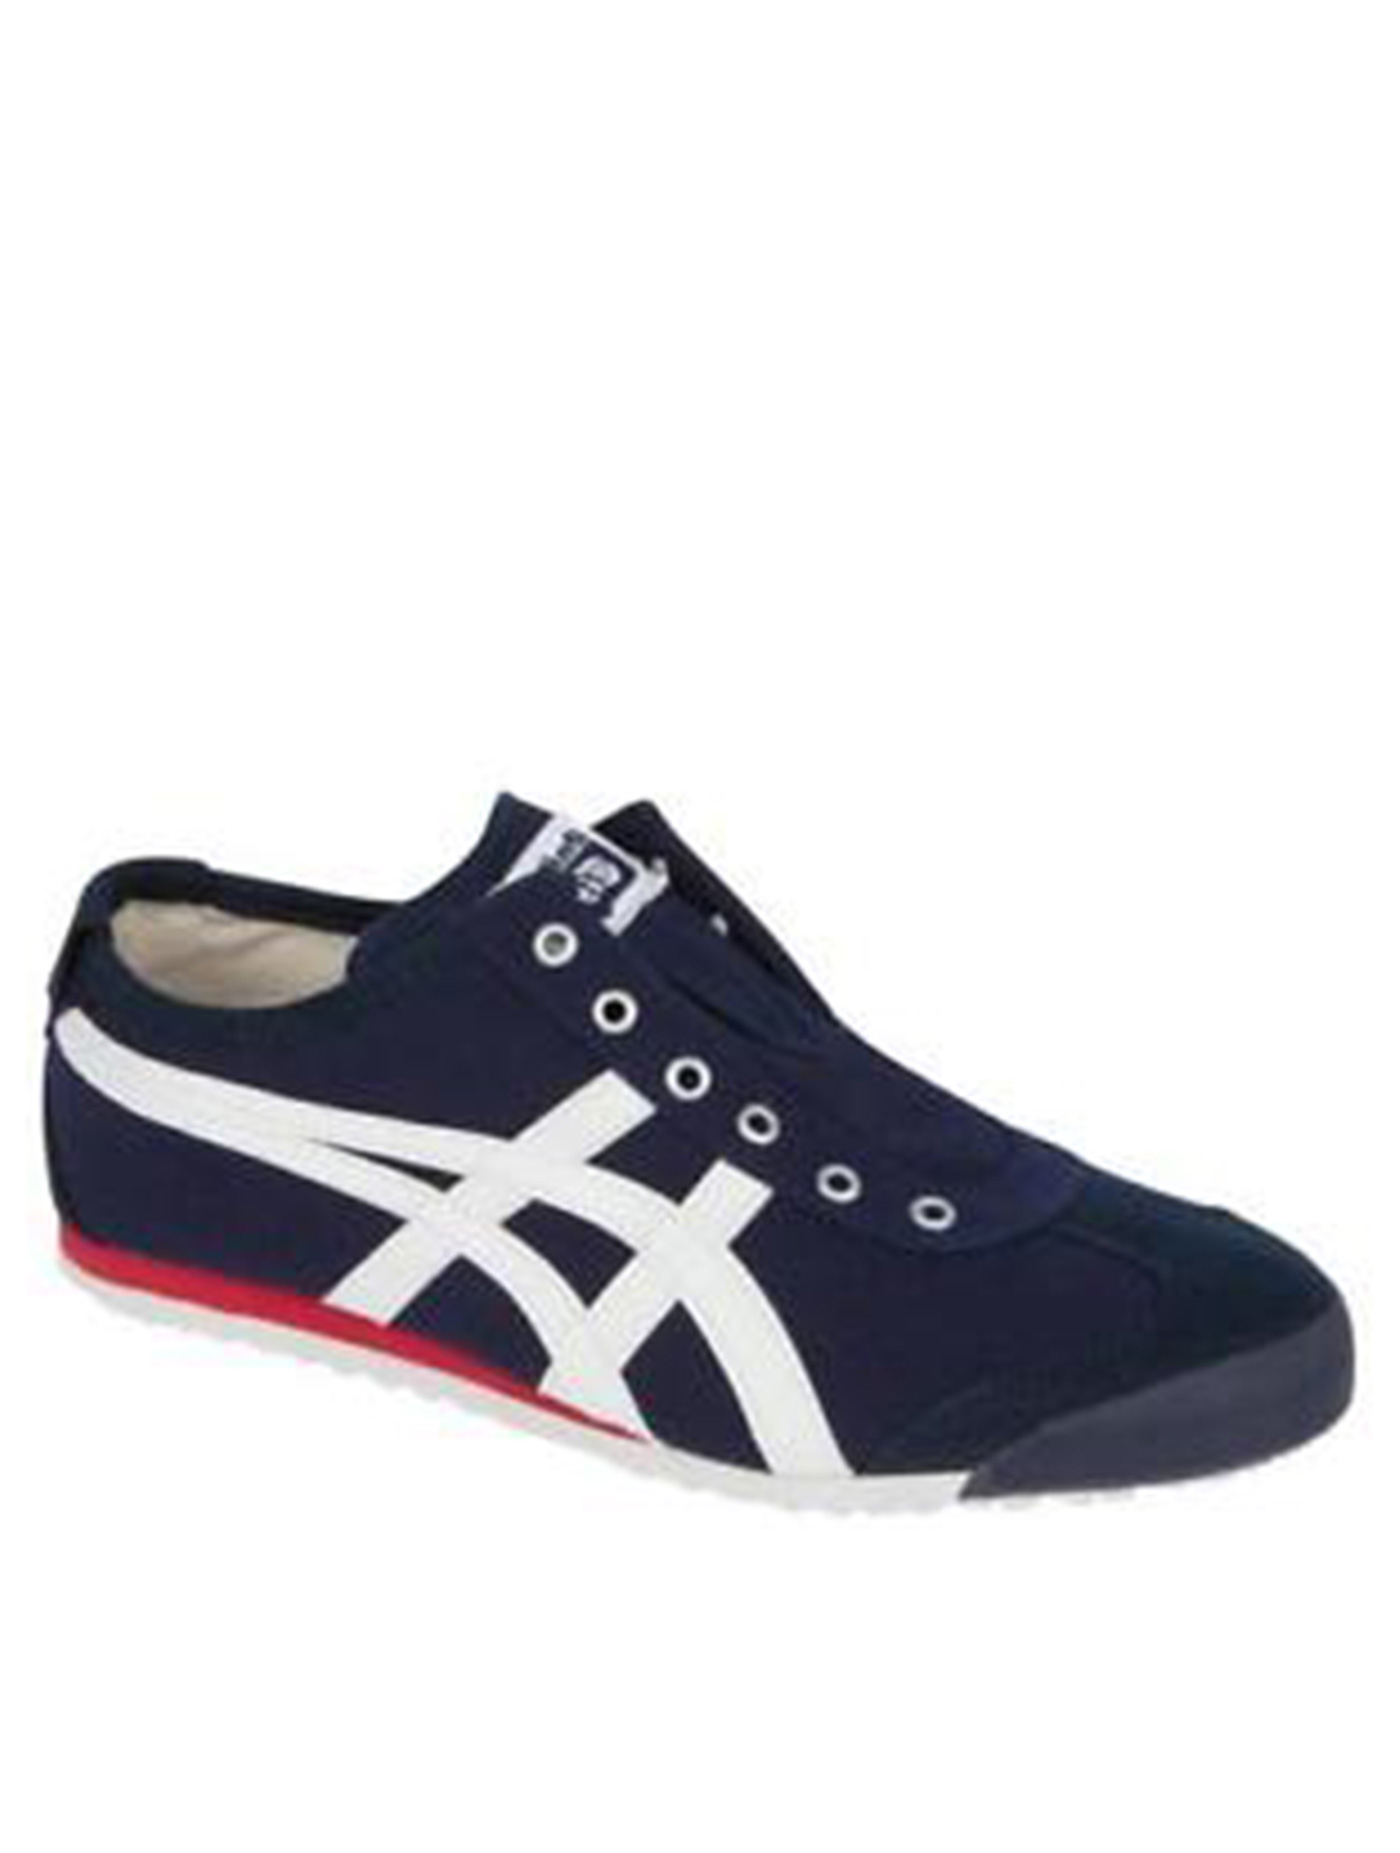 brand new 3b468 40e74 Mexico 66 Slip-on Casual Shoes Navy - White Size 8 | Central ...